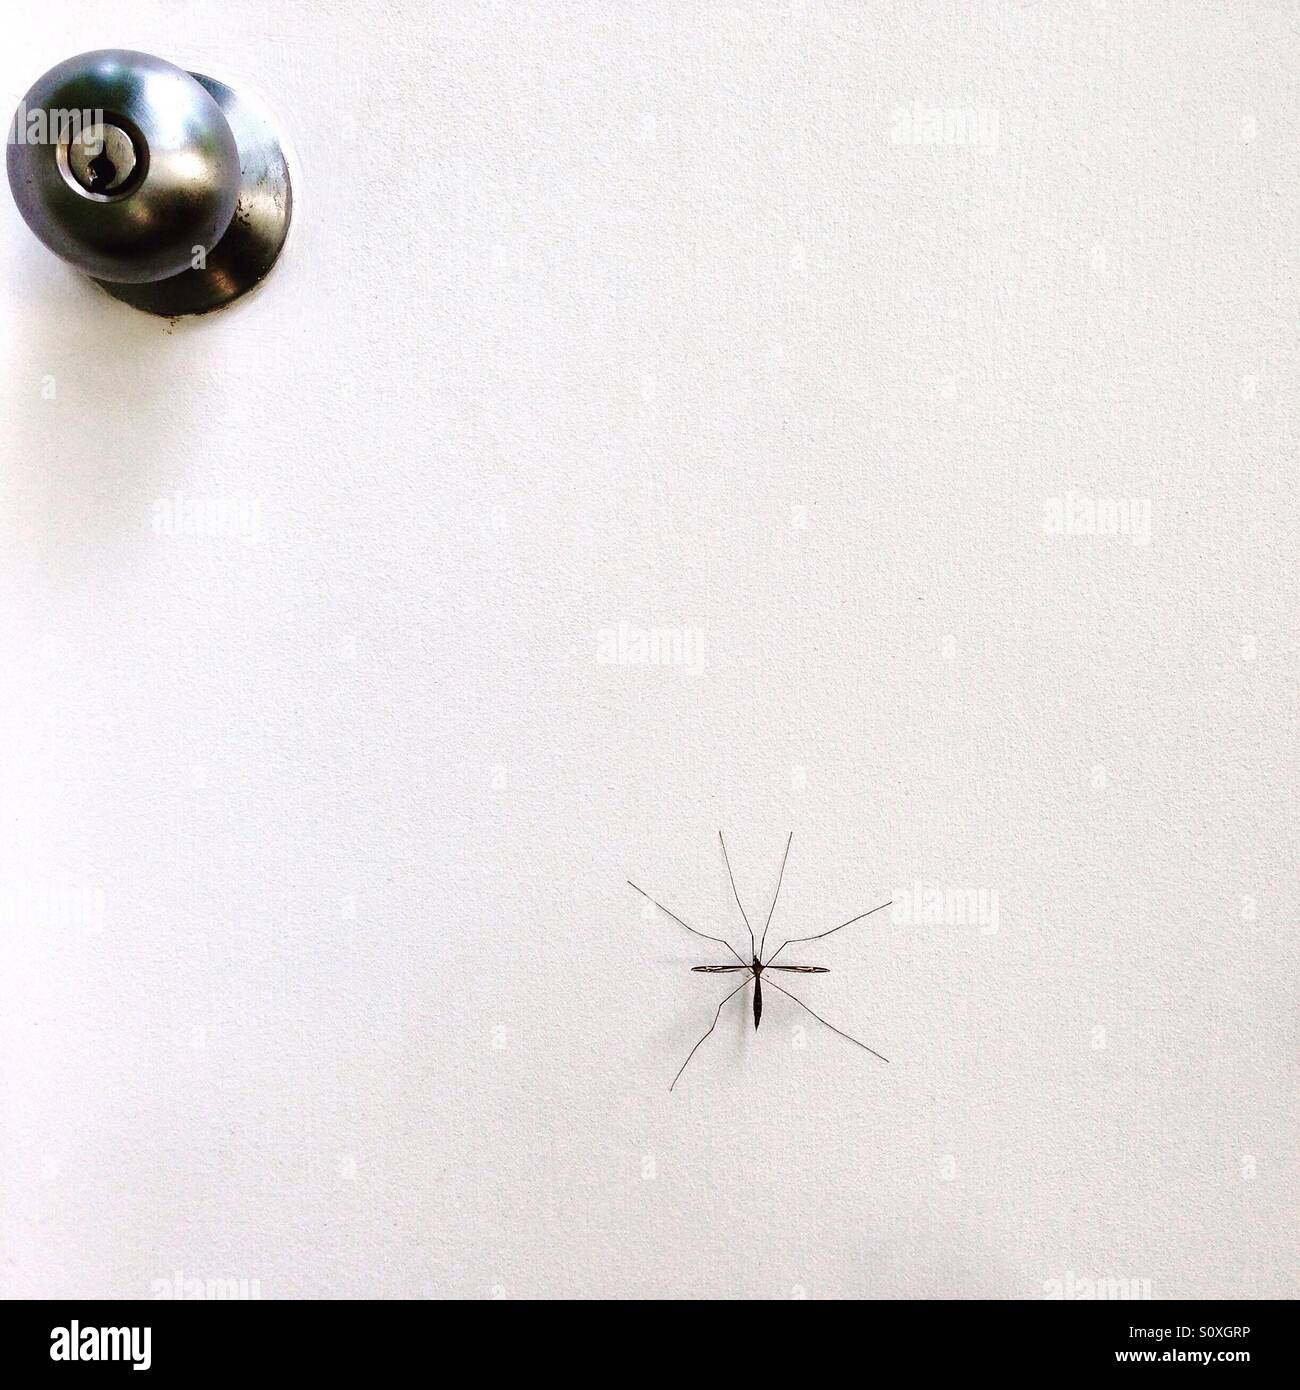 Giant crane fly trying to enter home - Stock Image